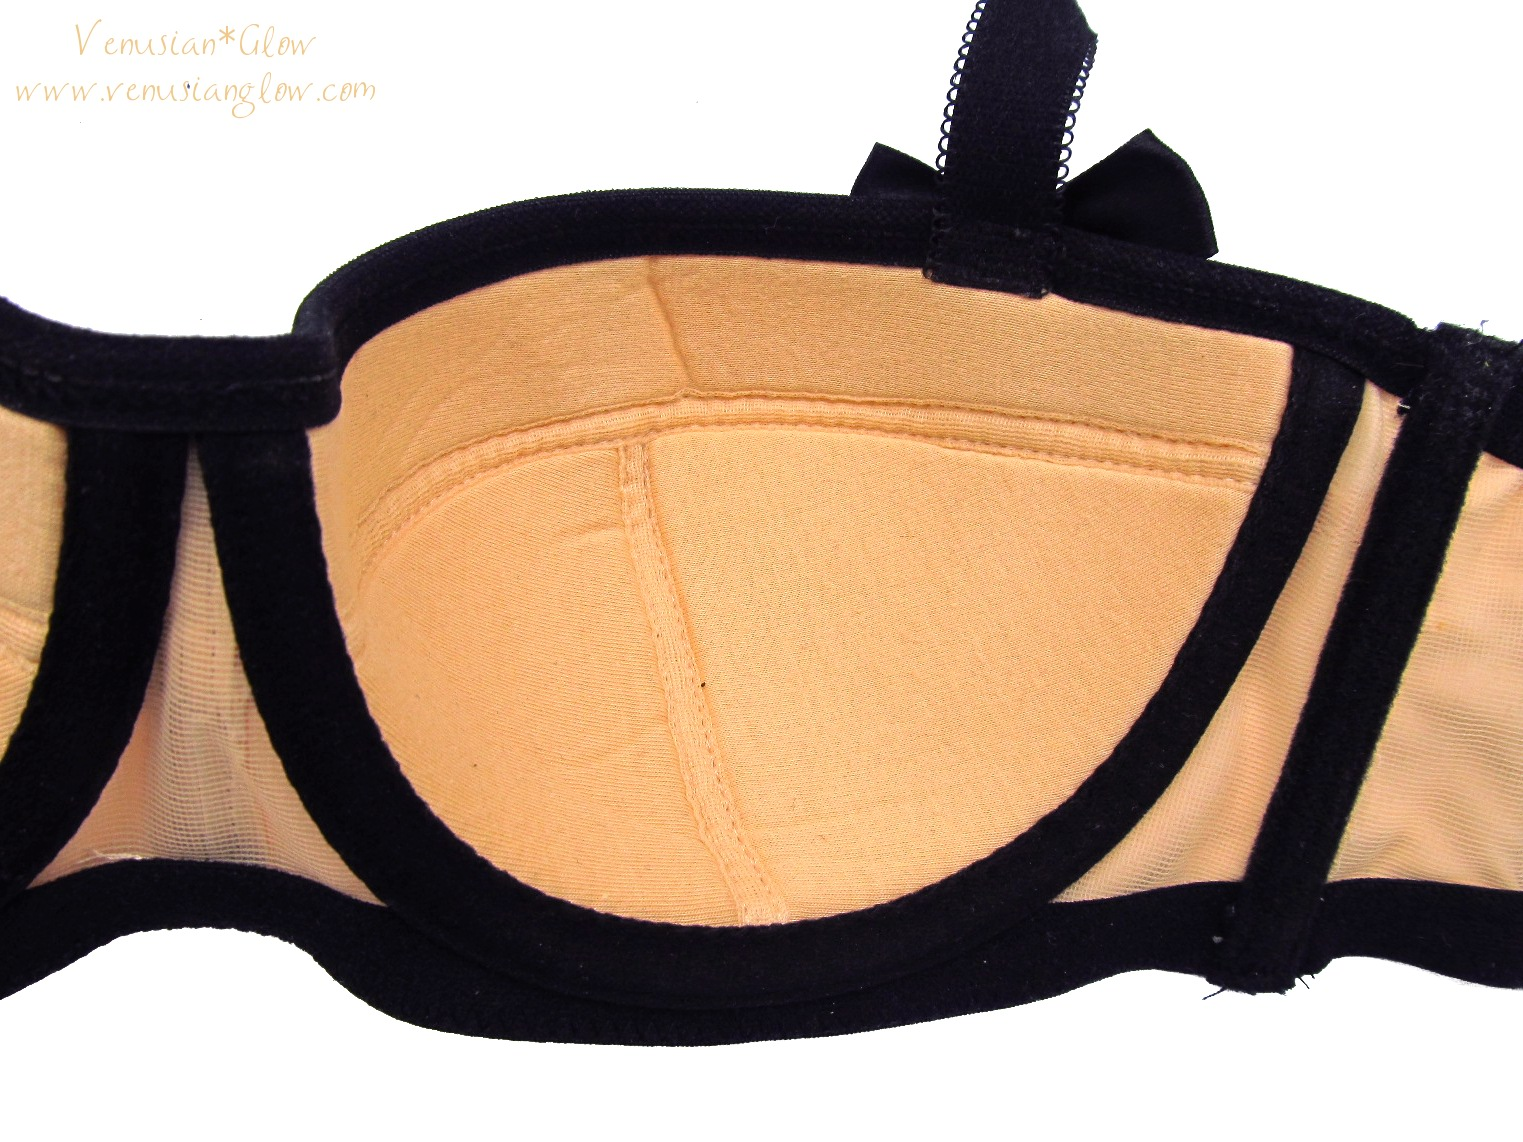 c111b8dea2eb4 The ample side coverage would be great for ladies that struggle with rolls  in those areas.